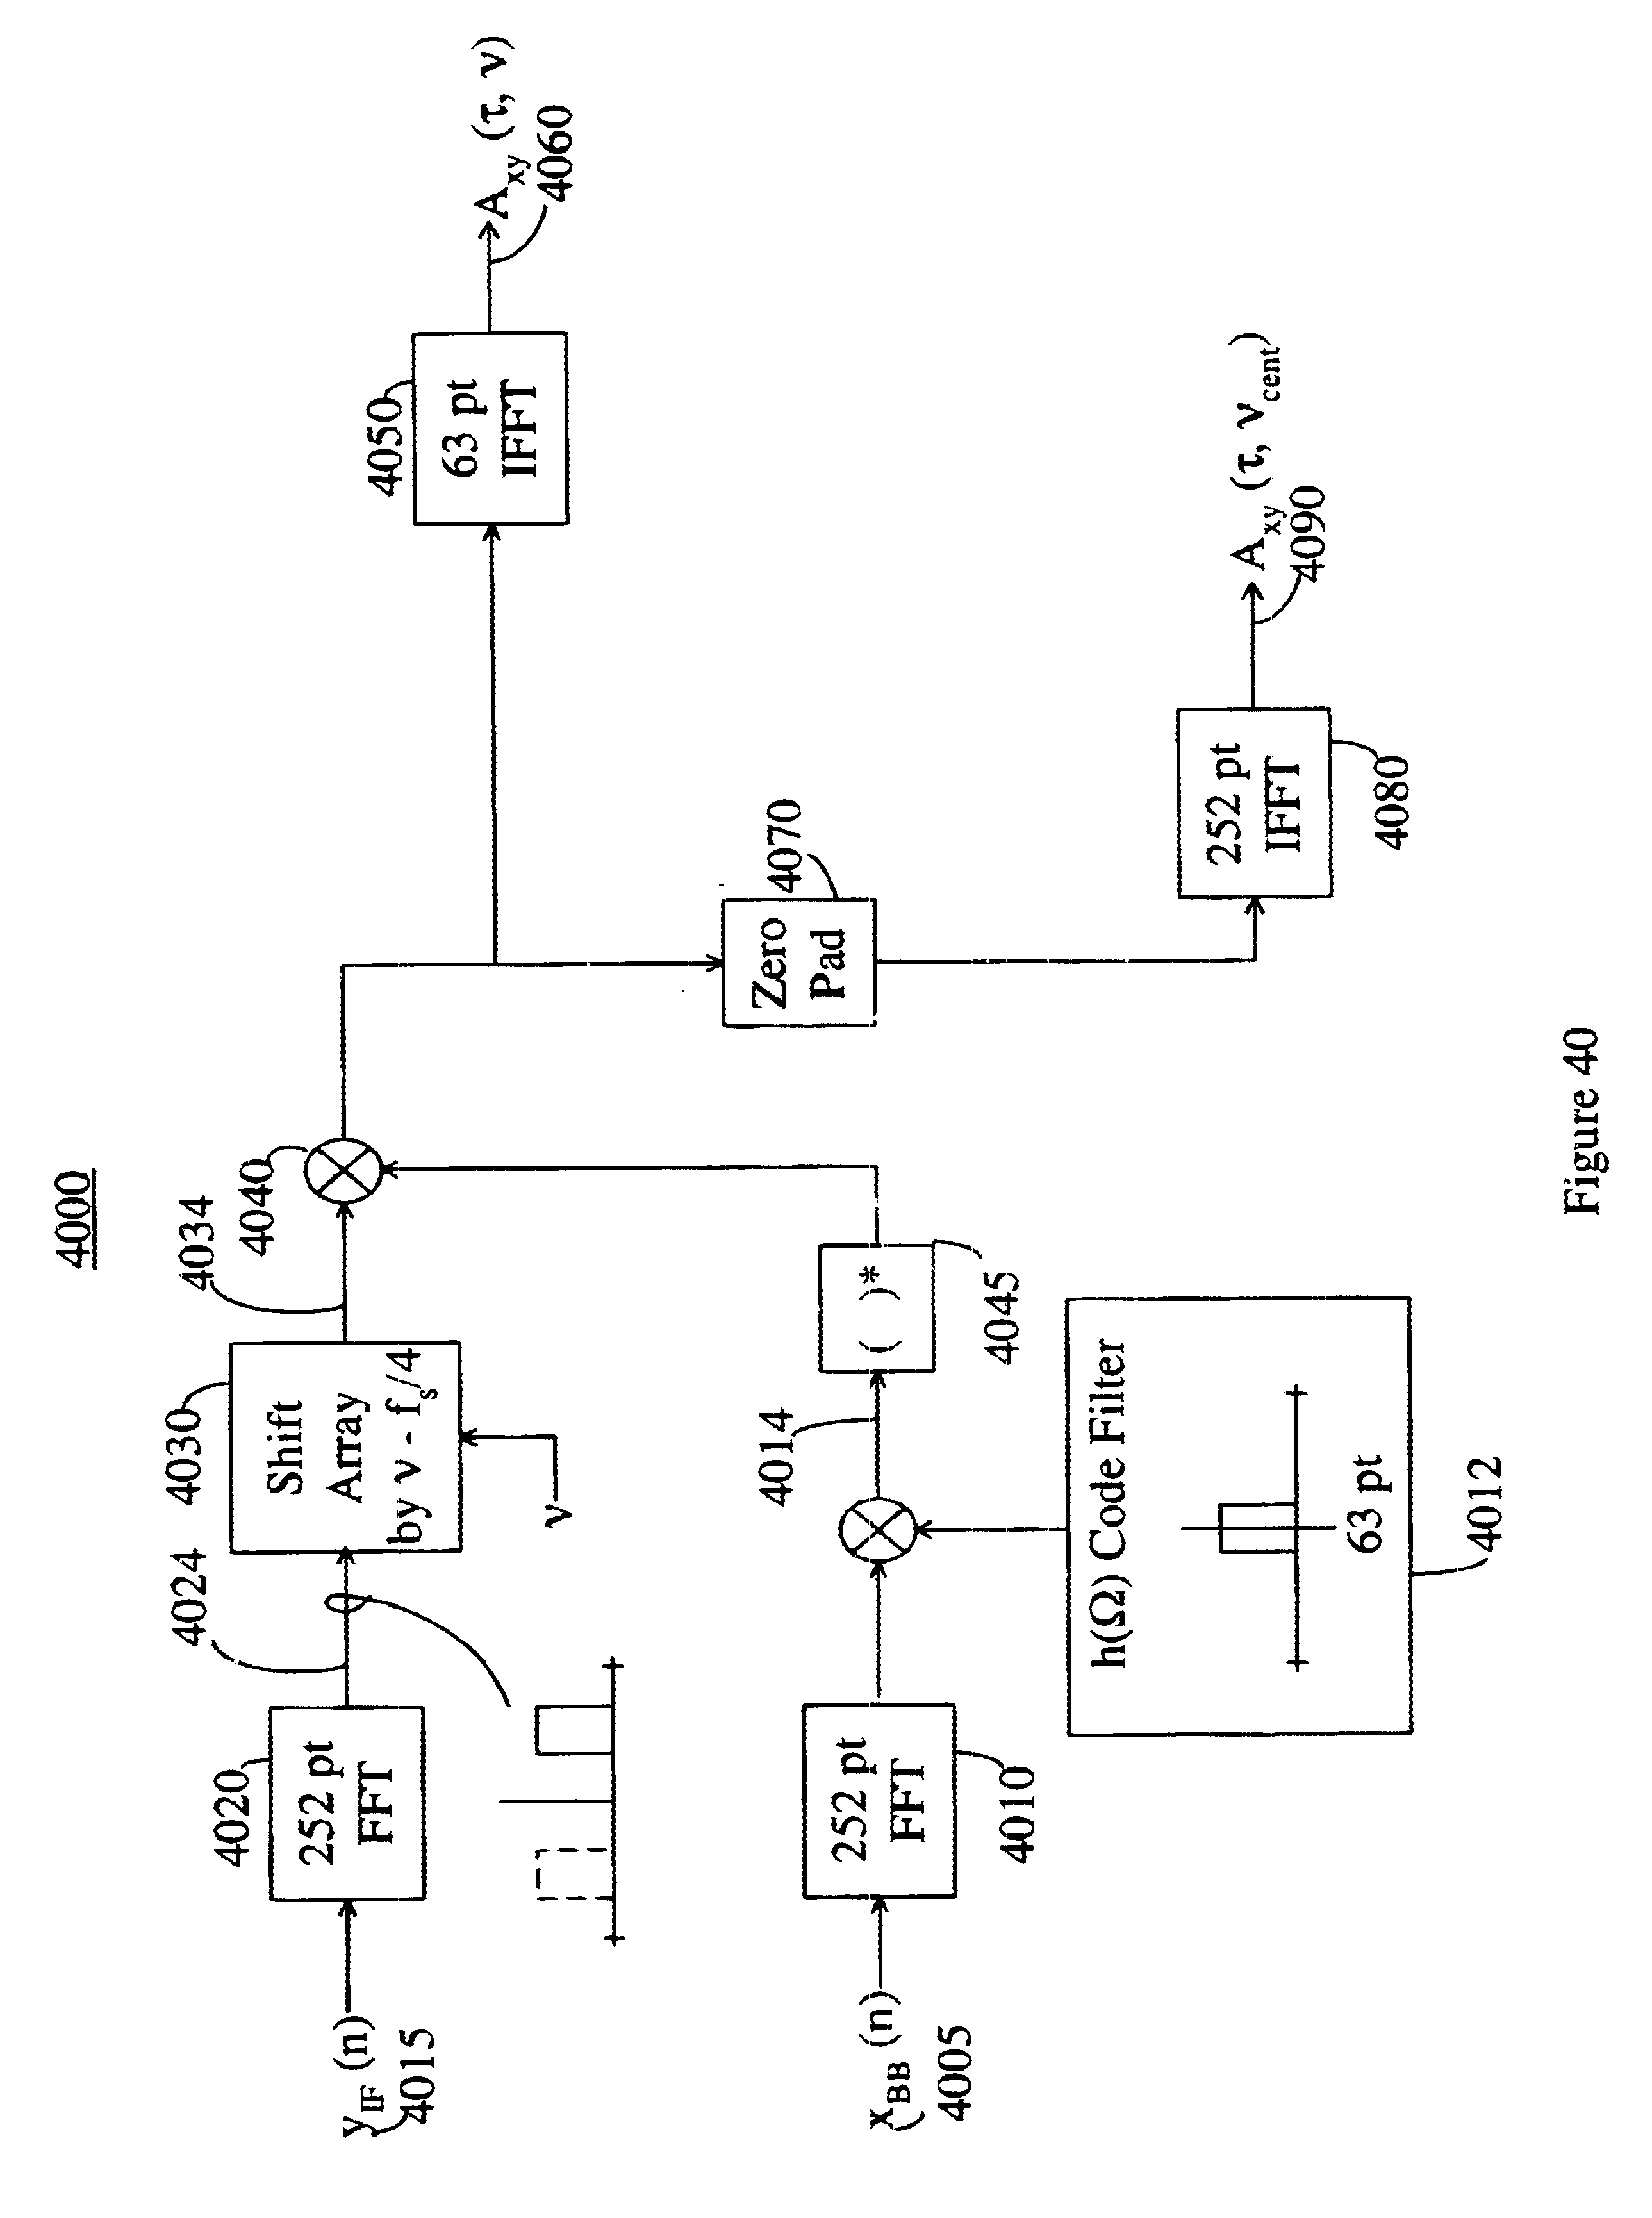 Patent Us 6639939 B1 Likewise On Off Push Button Switch Circuit Timer Schematic Symbol Images